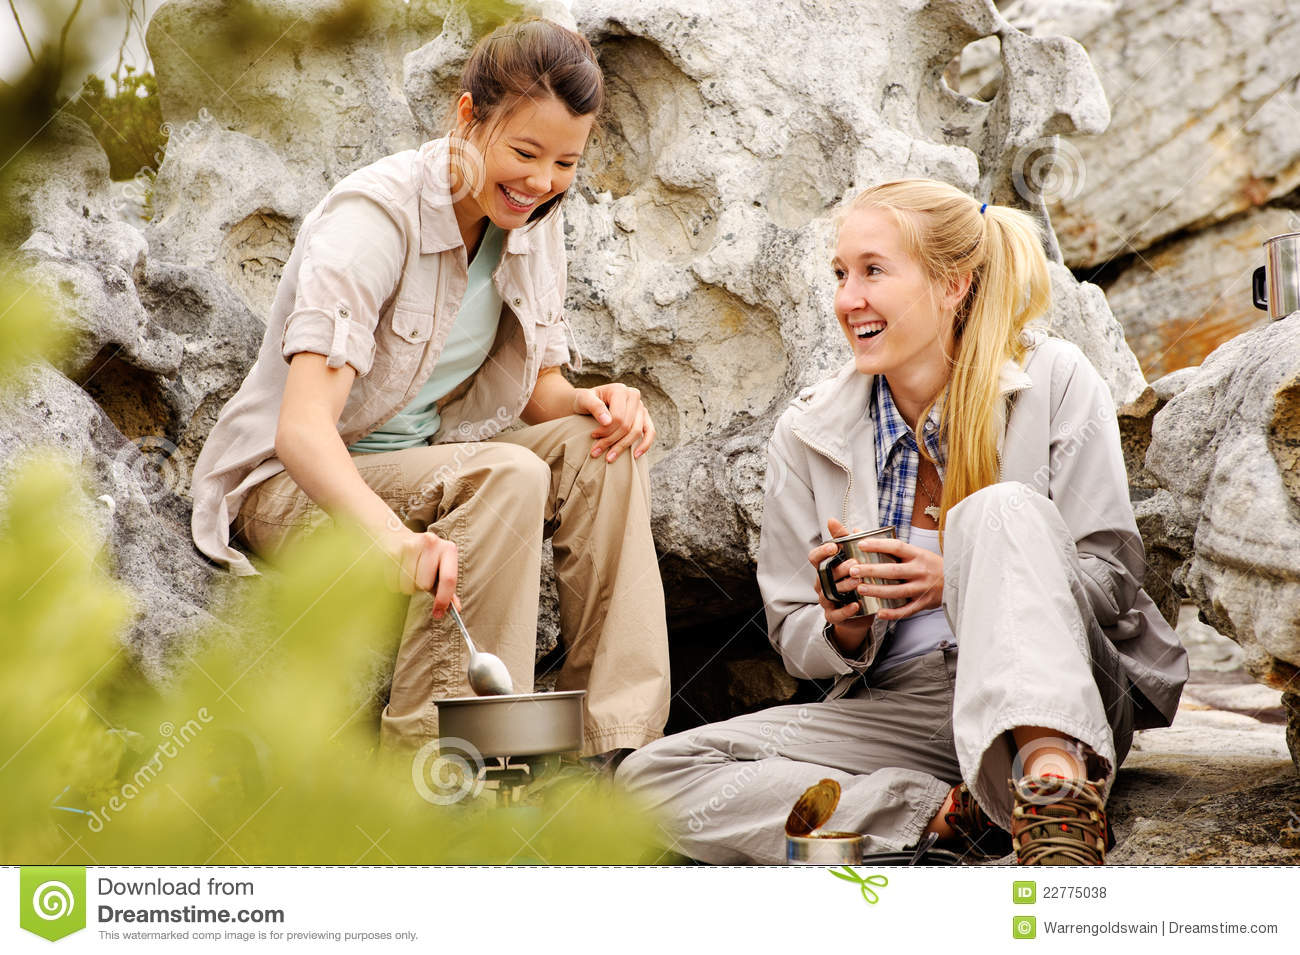 Young women relaxing after a days hike